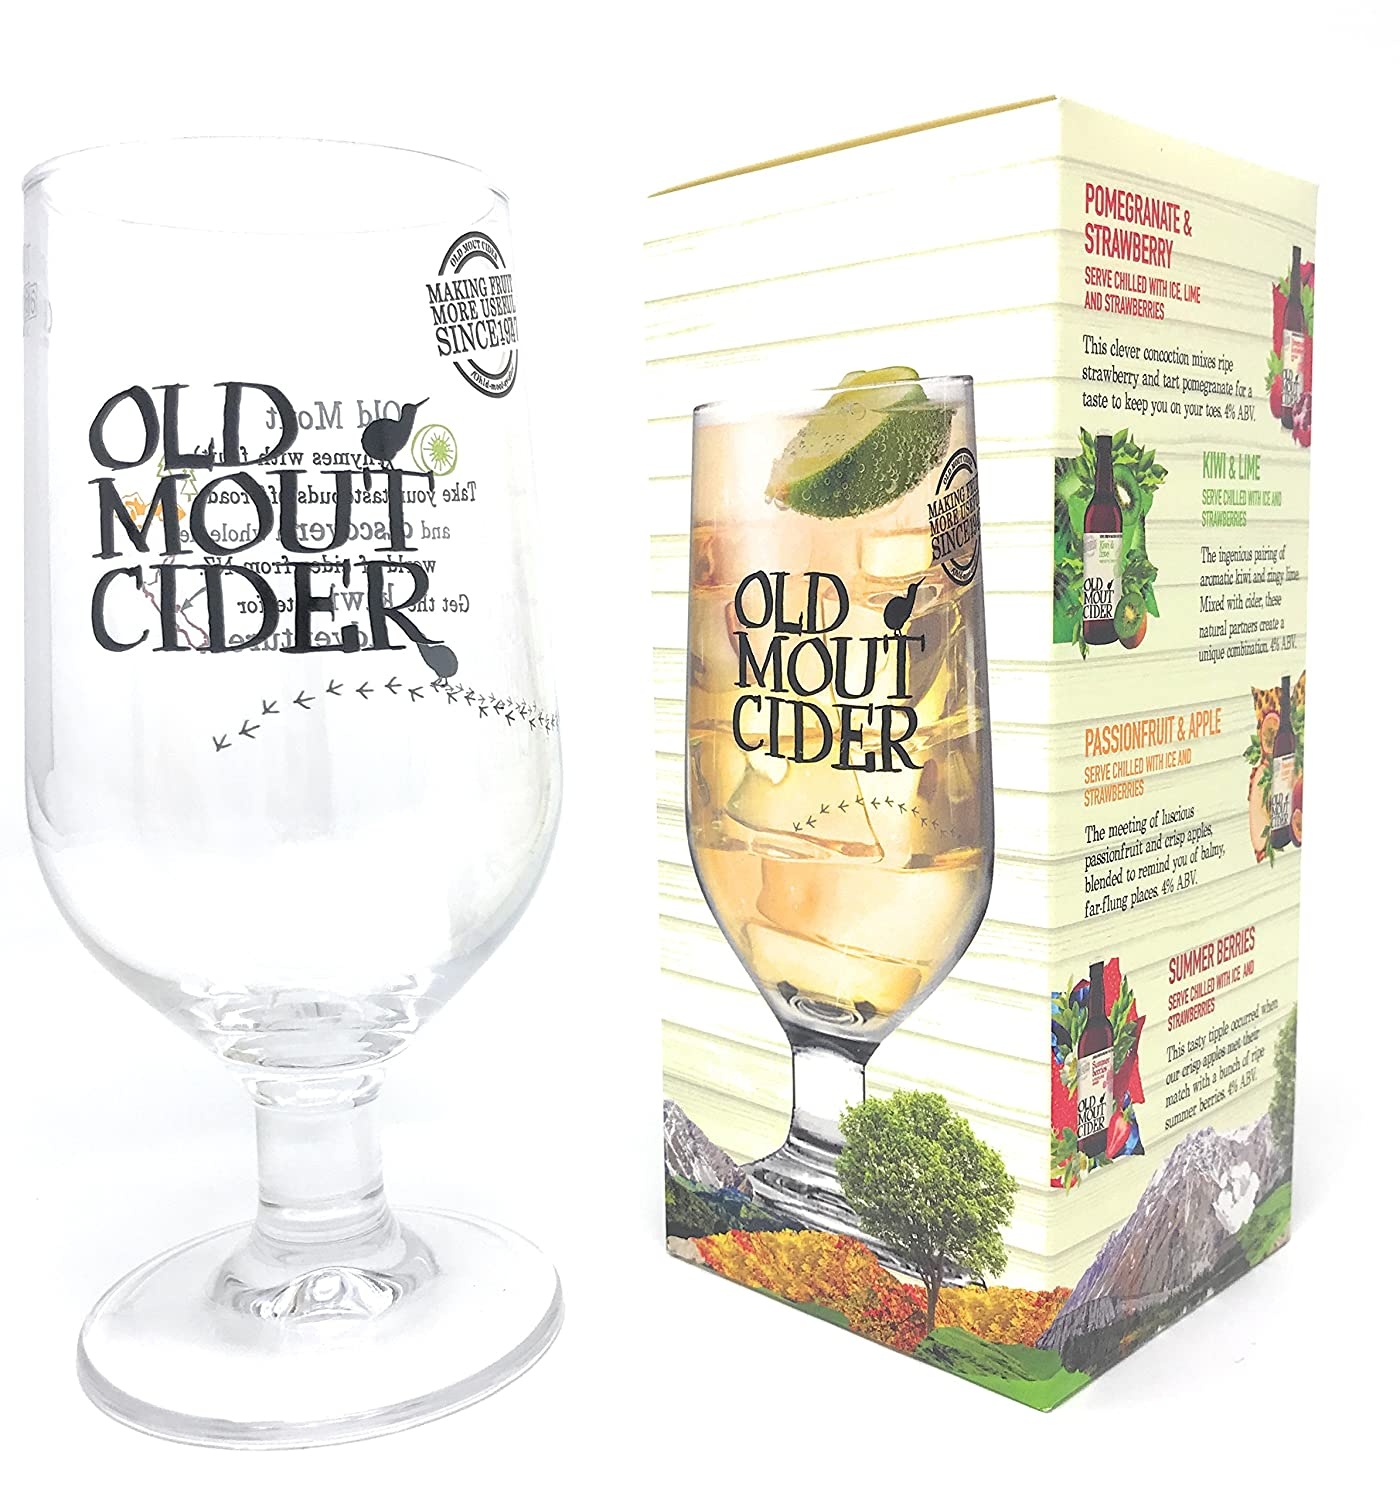 Old Mout Cider Pint Glass in Official Branded Gift Box (1 Glass) Arc International Plc